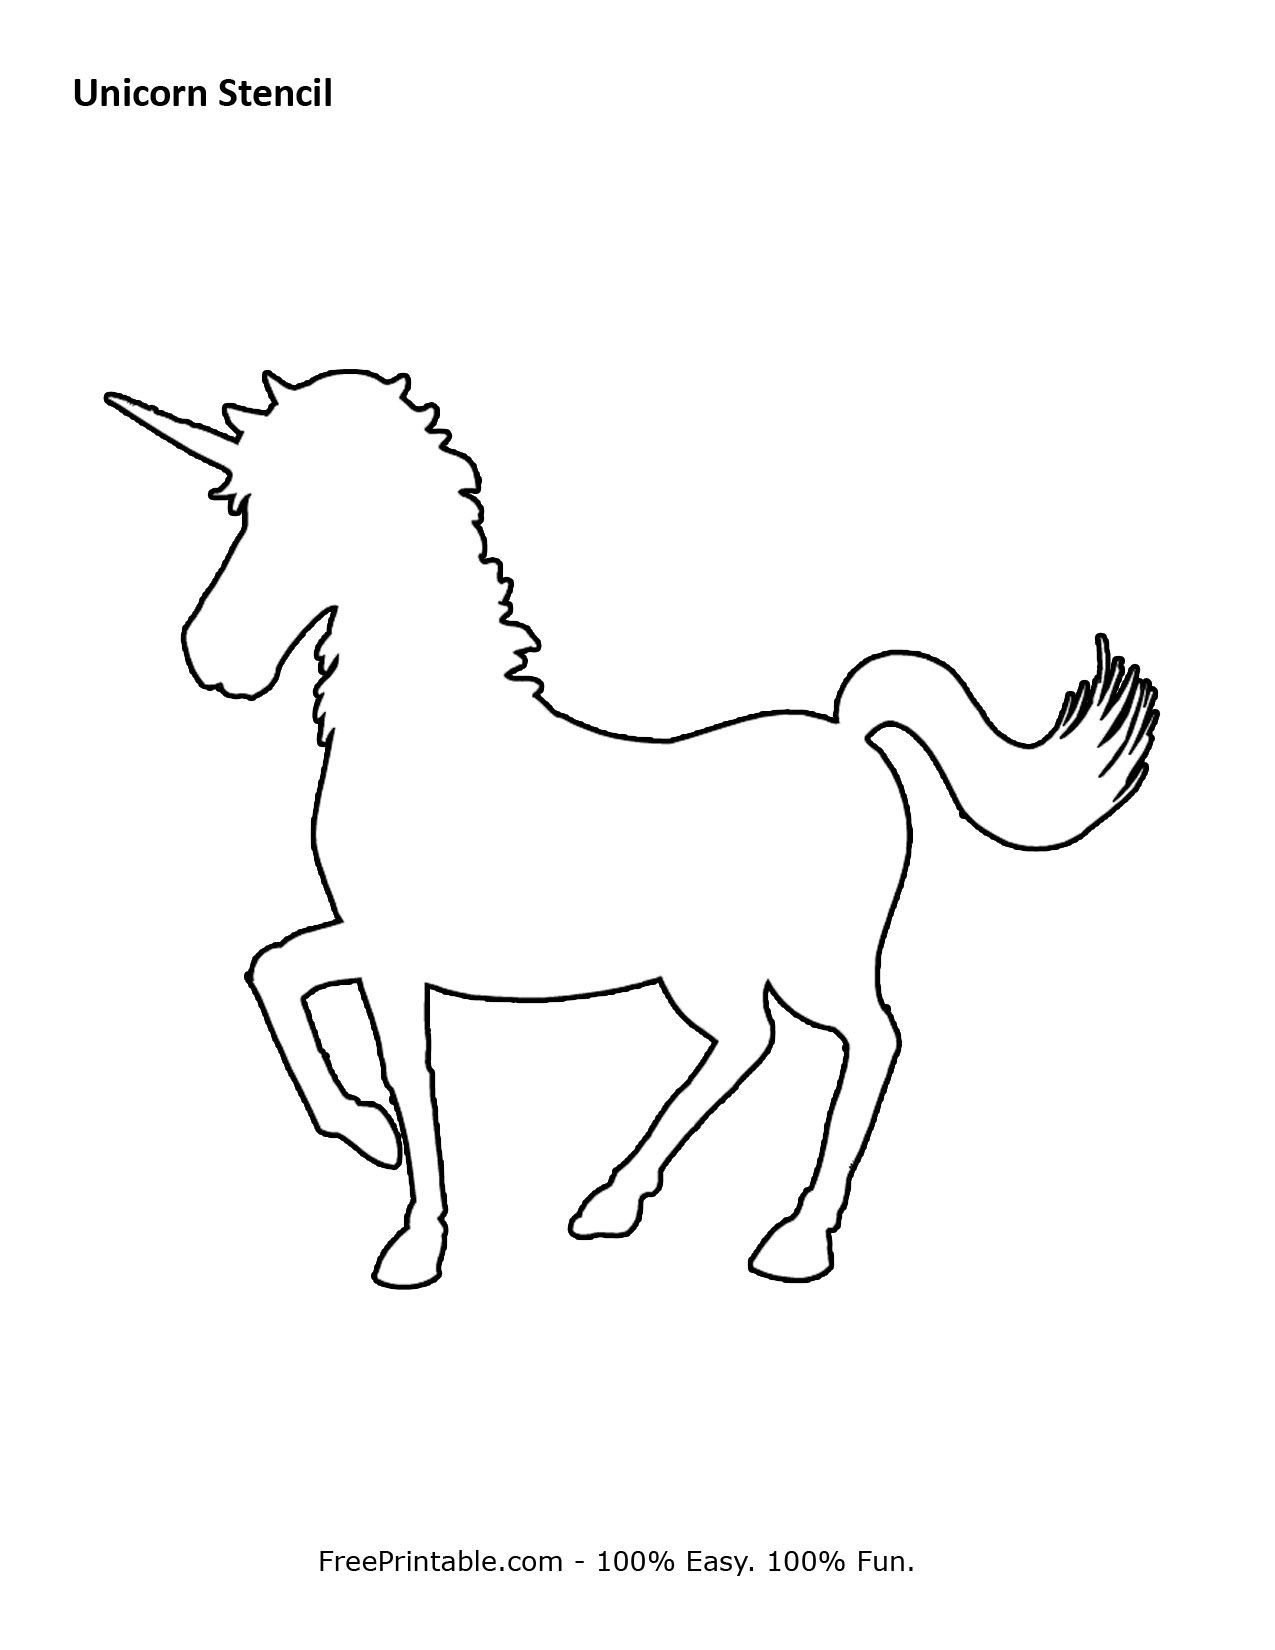 Free Printable Unicorn Stencils